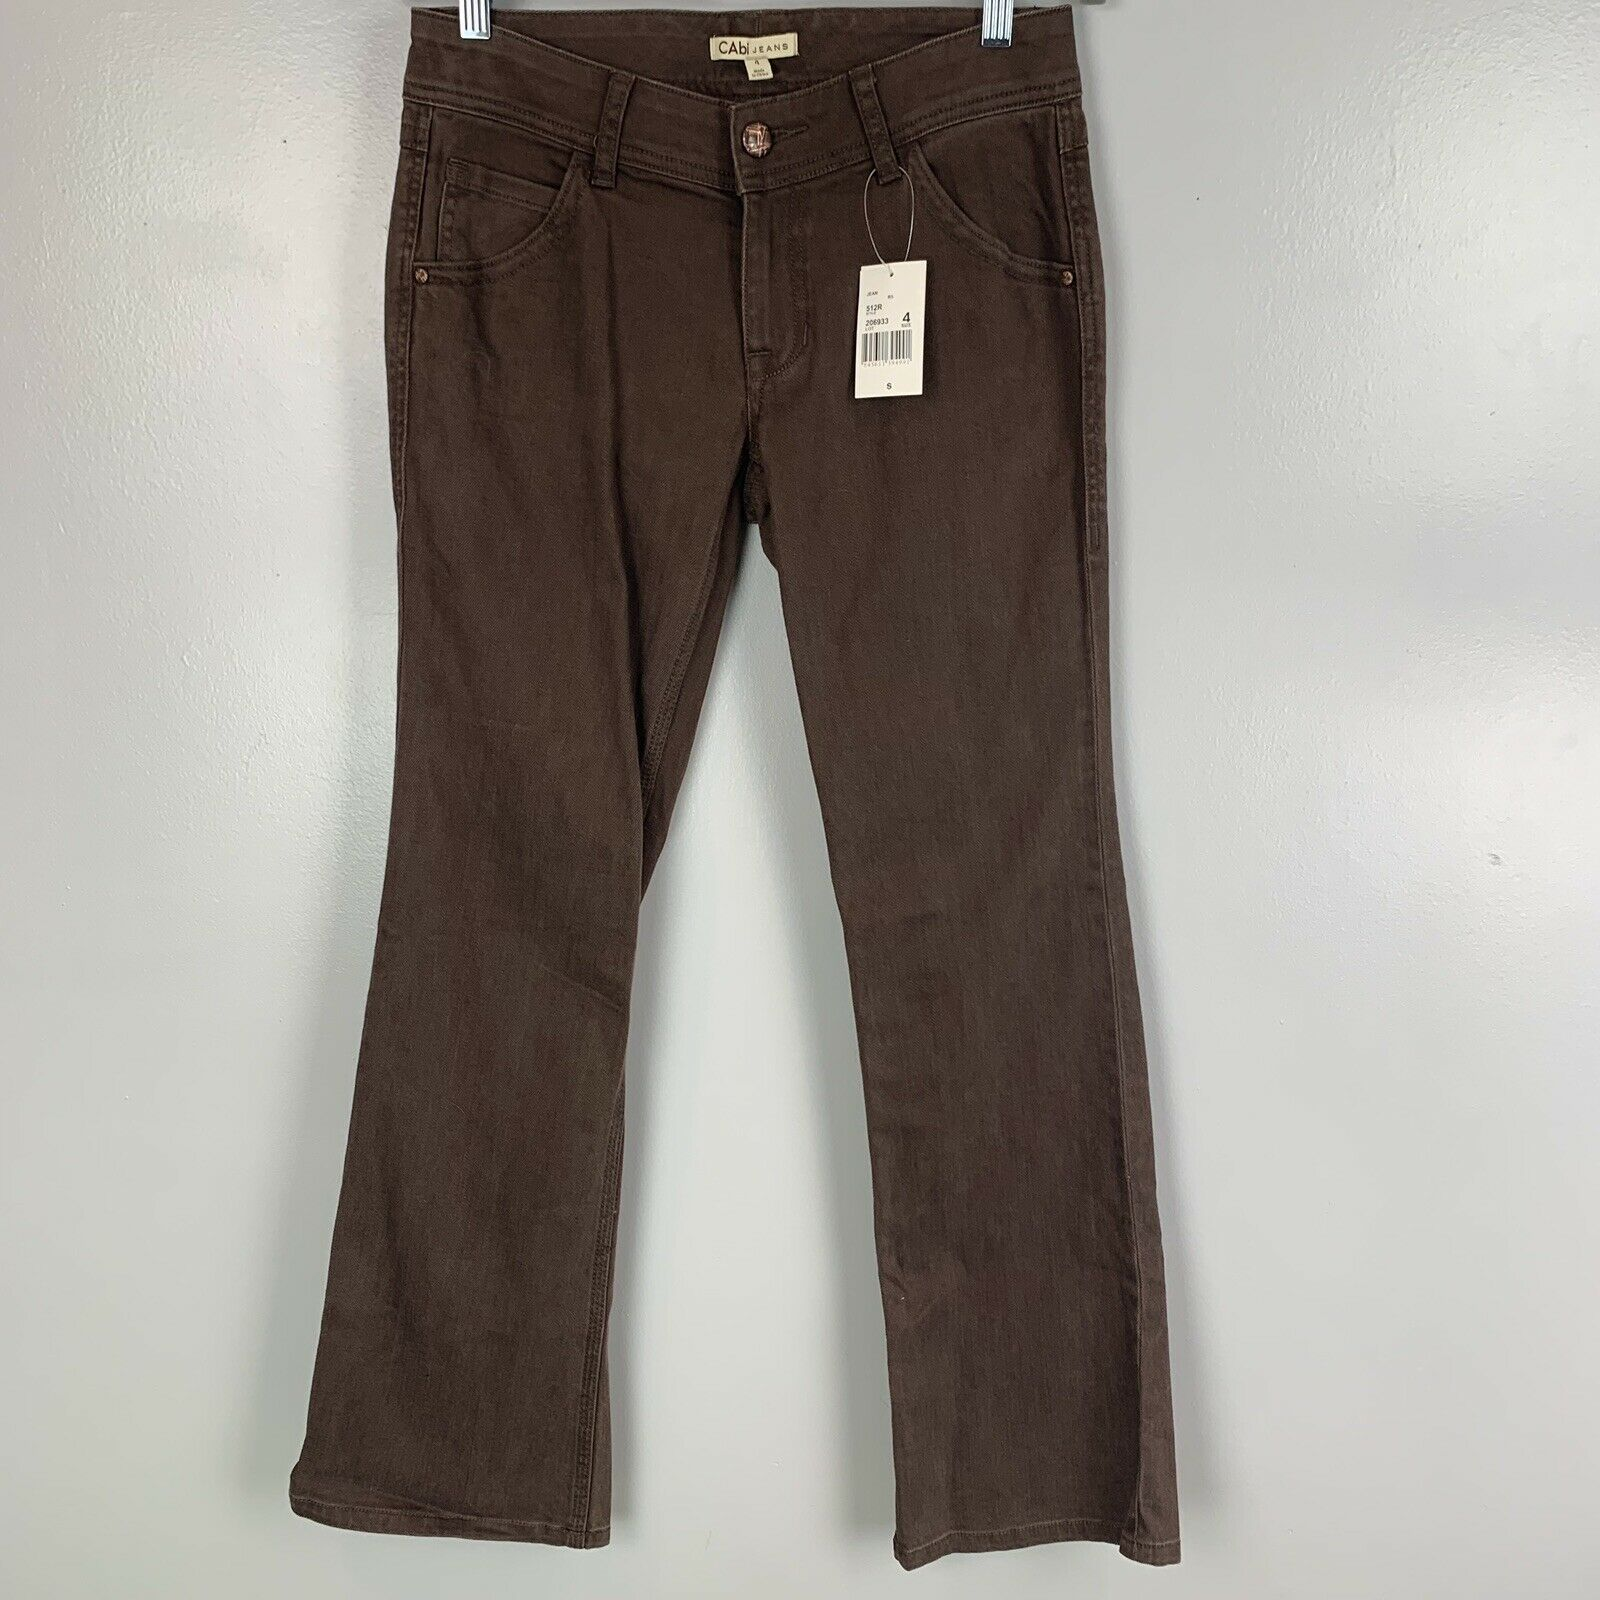 Cabi Jeans Women's Contemporary Bootcut Brown Jeans NWT Sz 4